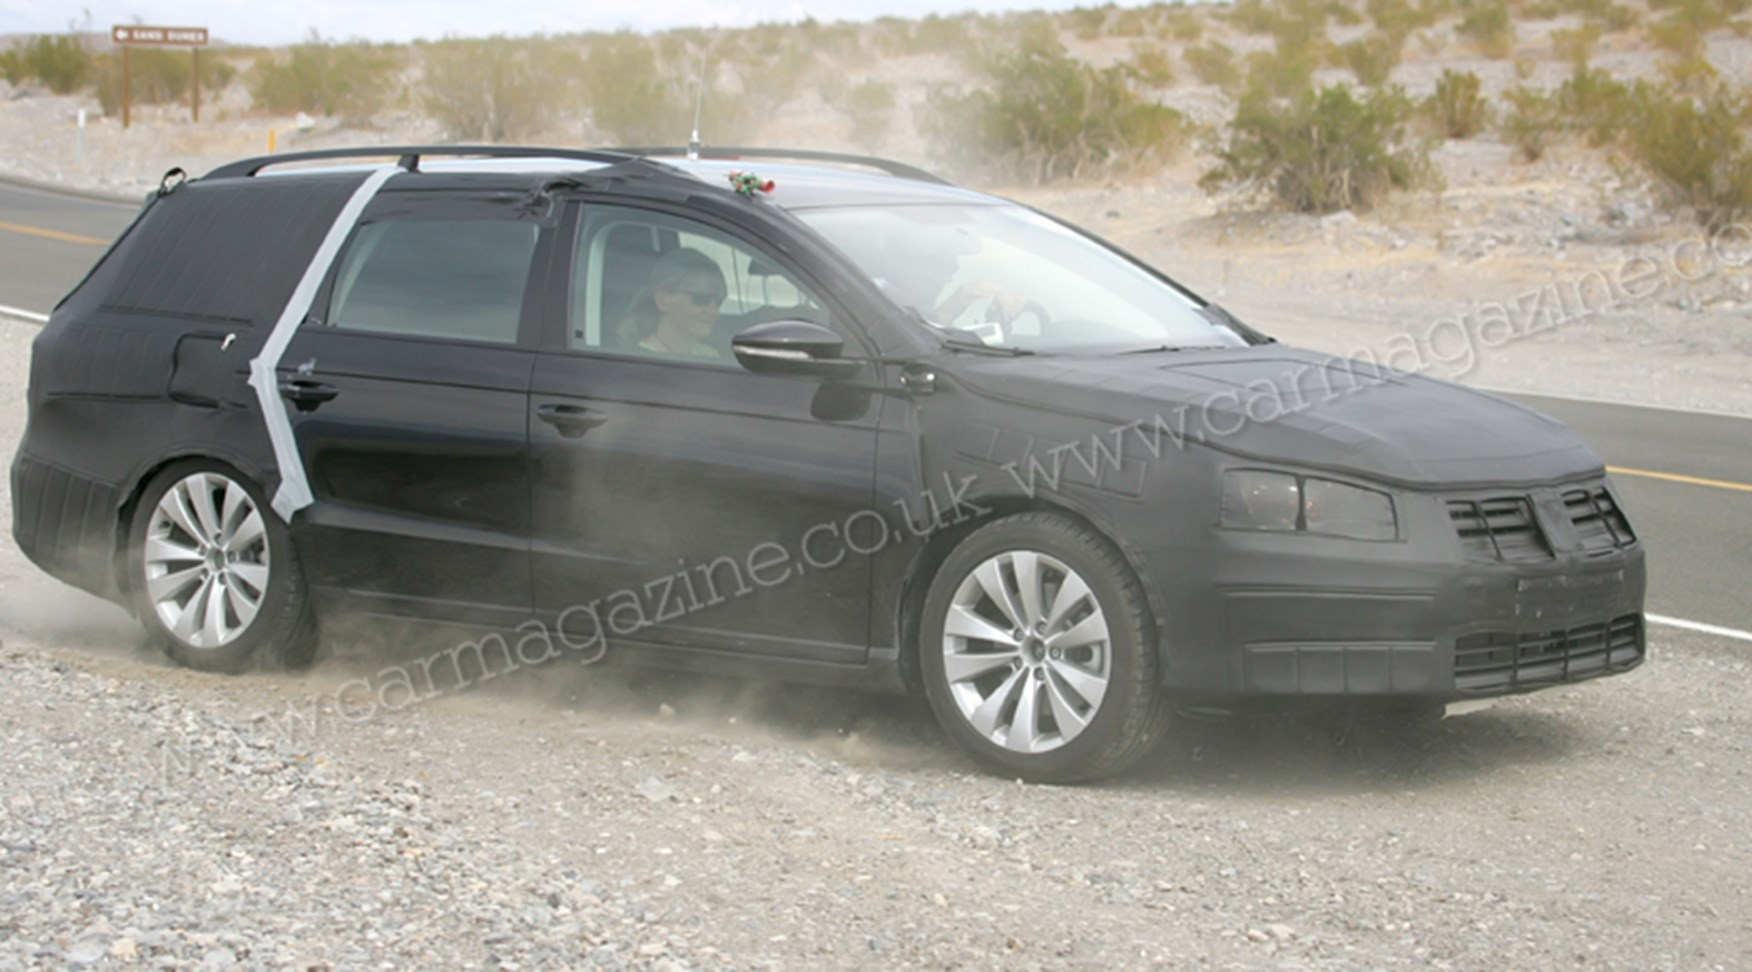 VW Passat Estate (2011) the new spy photos | CAR Magazine